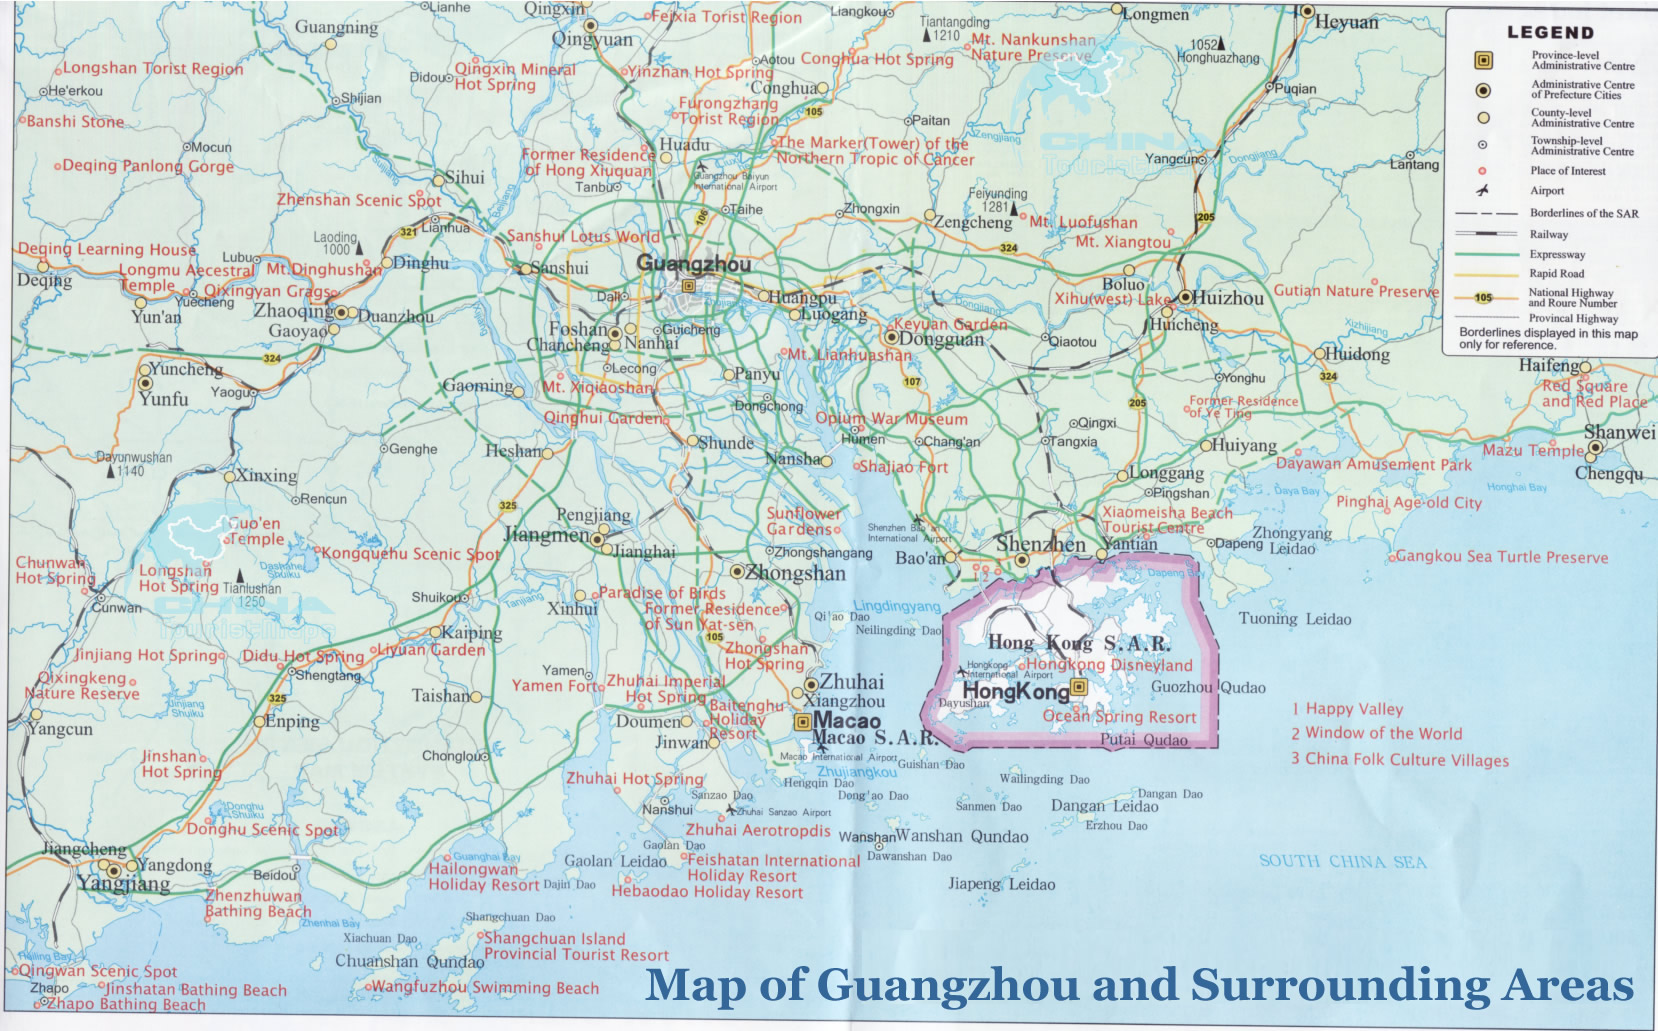 Interested in guangzhou district map guangzhou city map 2013 guangzhou